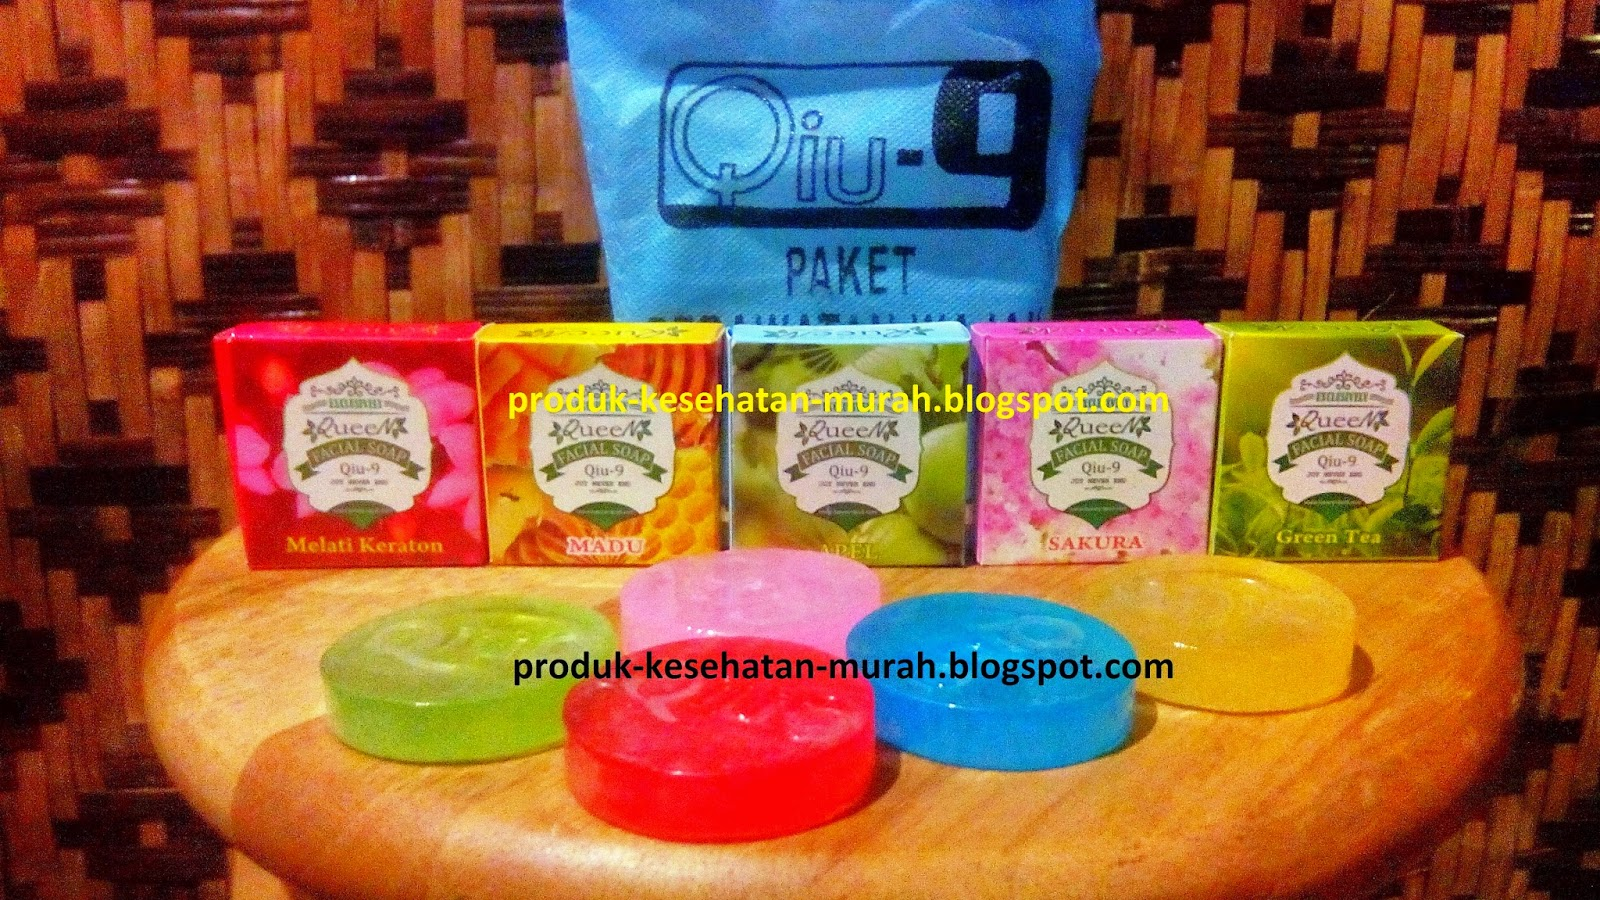 Qiu-9 Queen Facial Soap